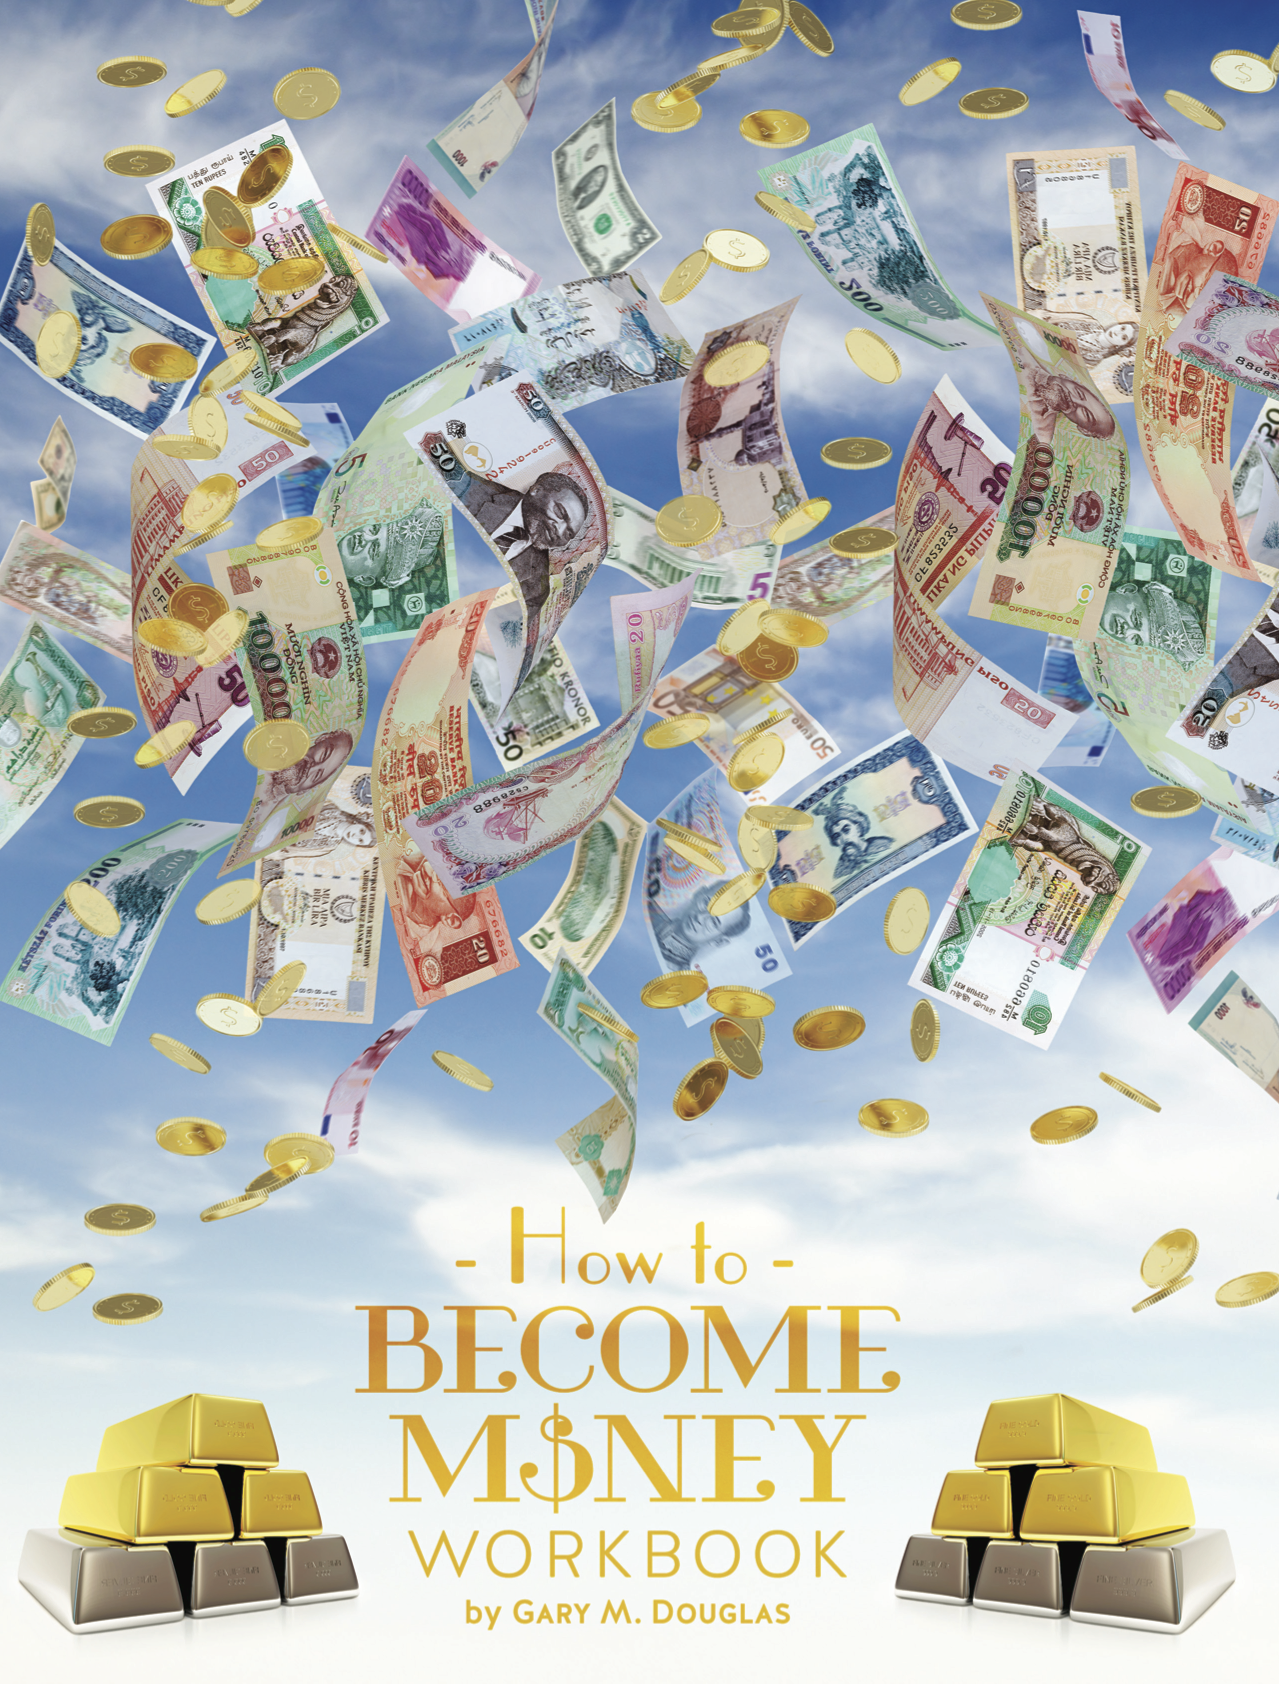 How To Become Money Workbook - BOOK